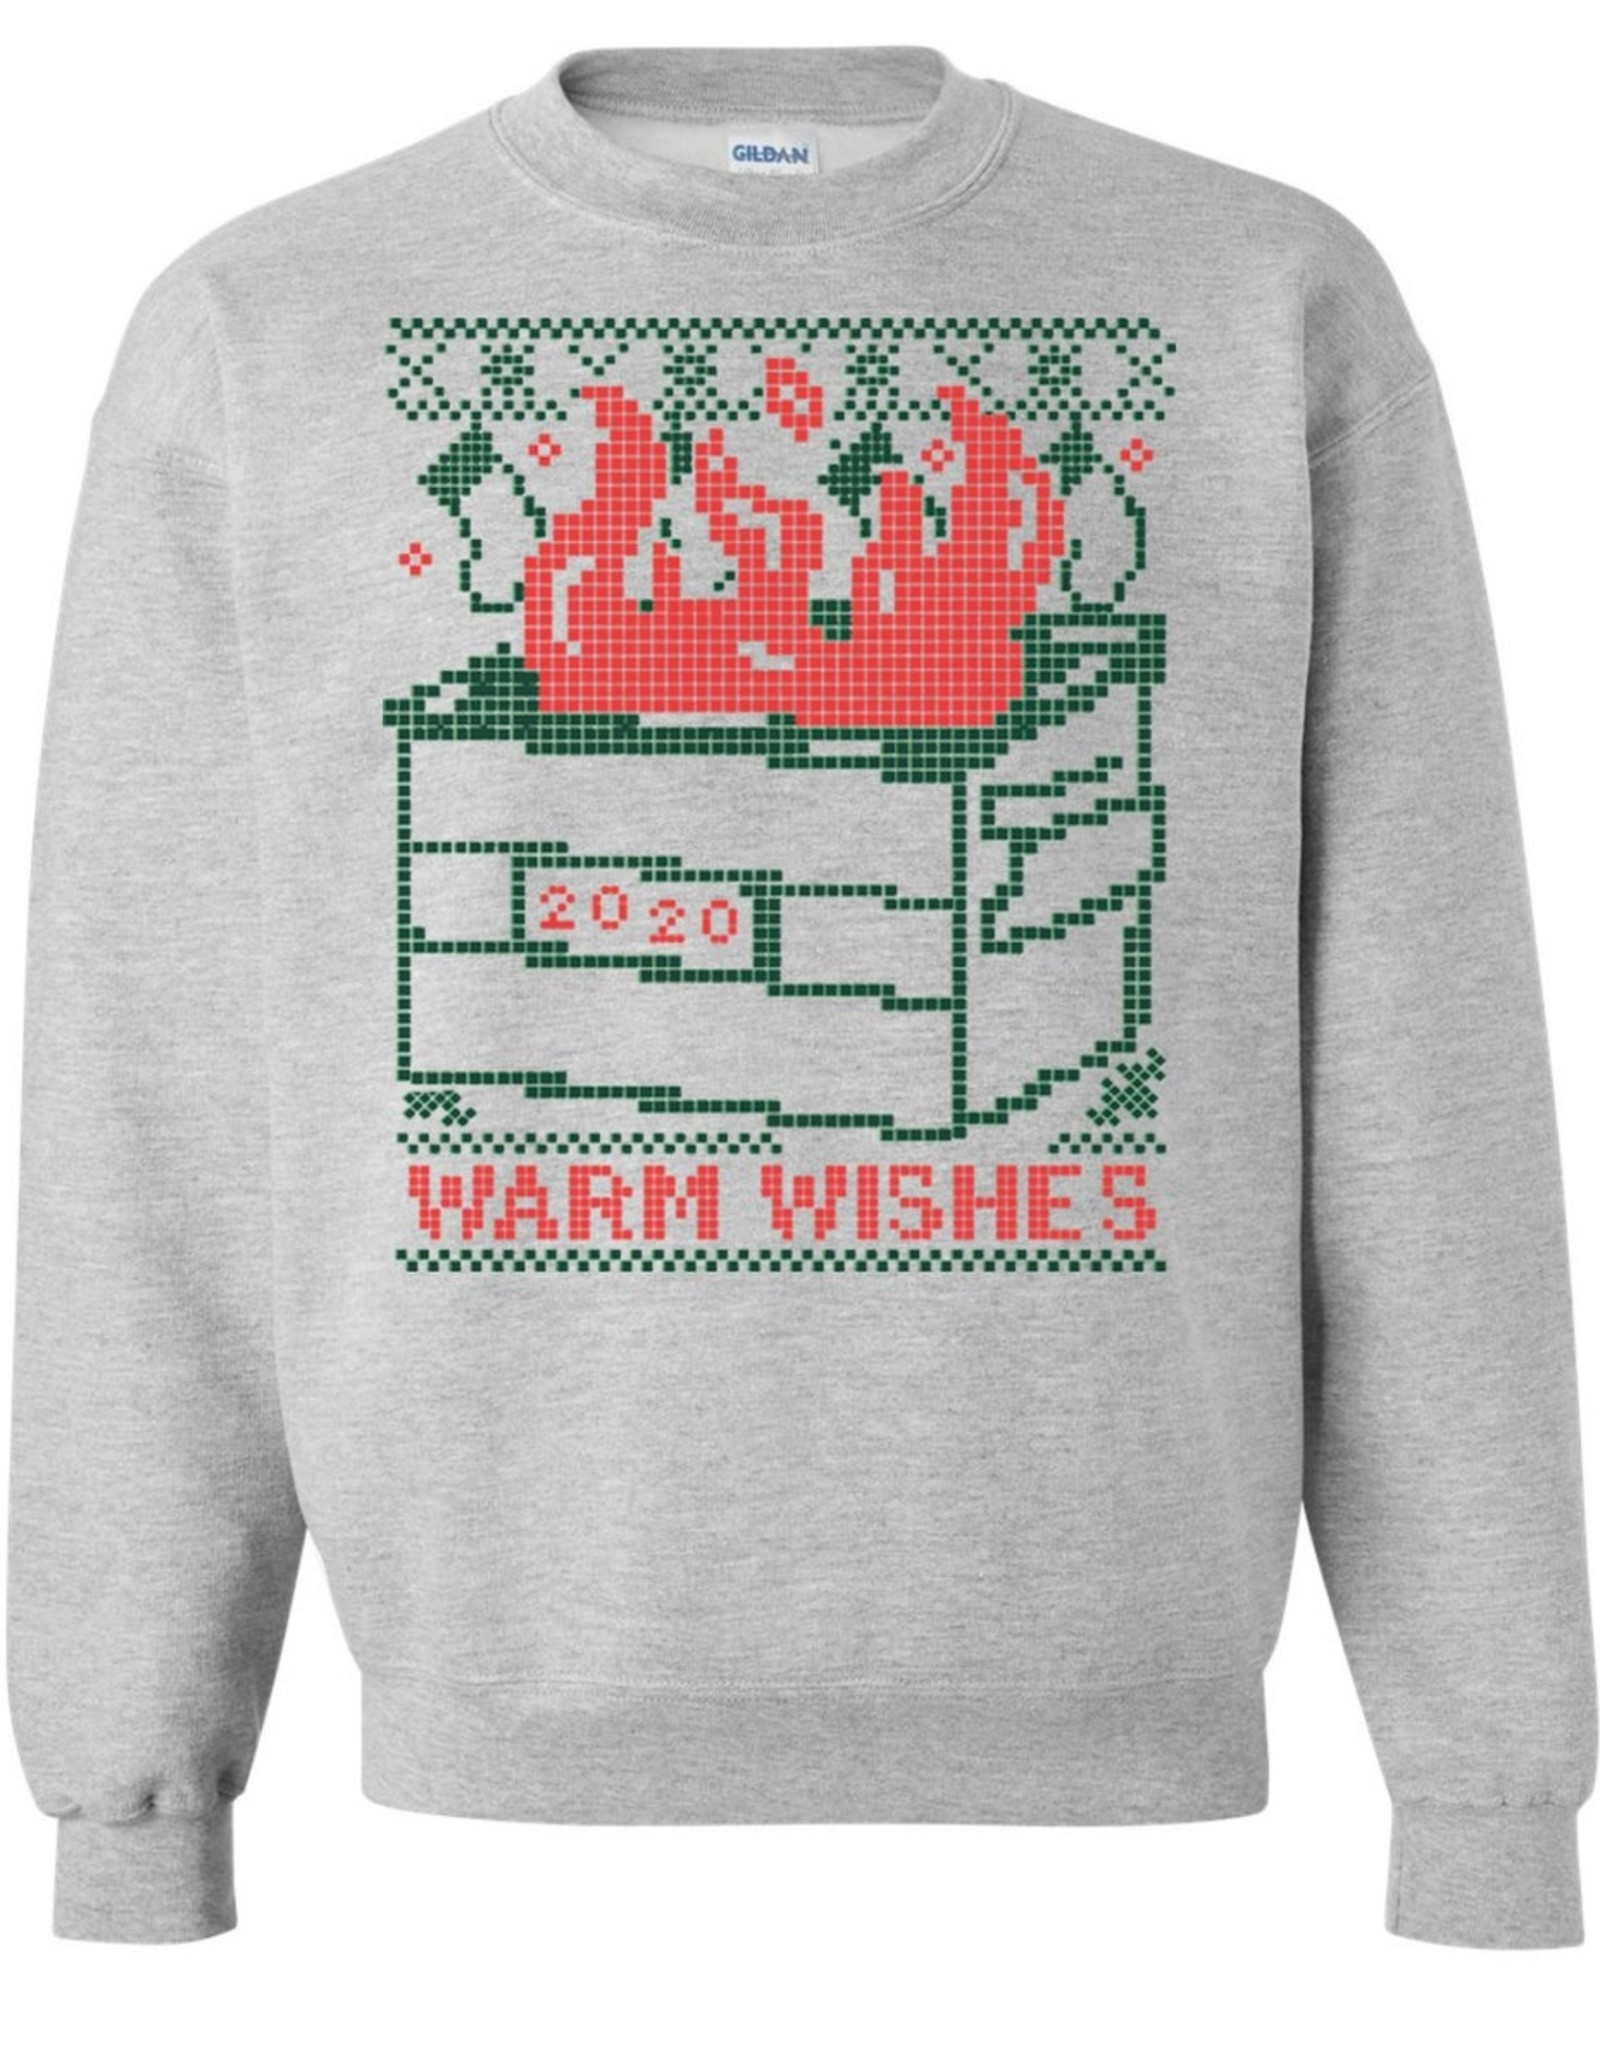 Warm Wishes Dumpster Fire Sweatshirt